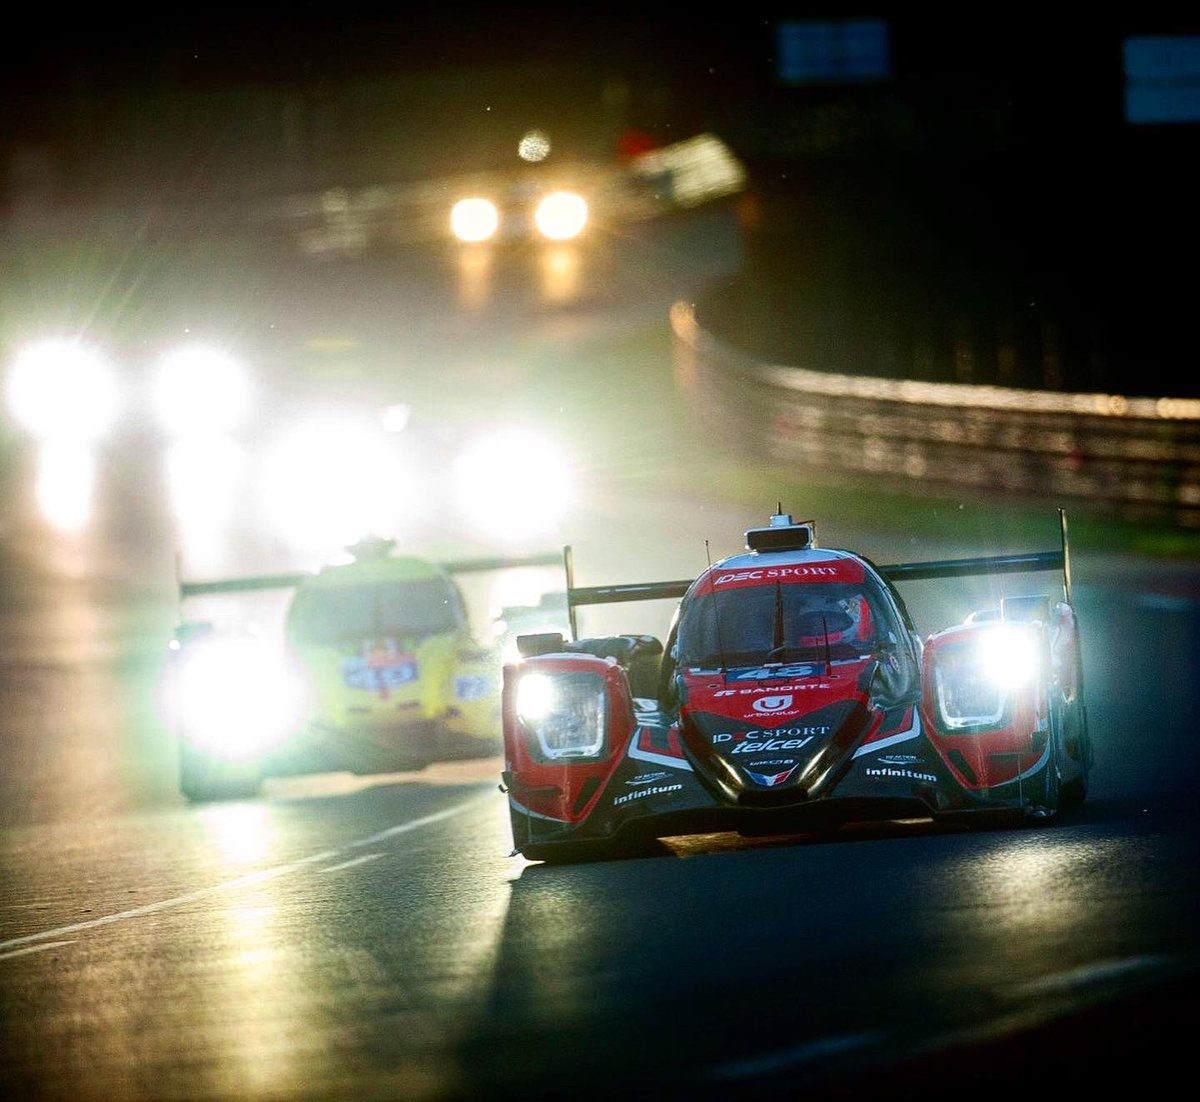 🌙 It's Wednesday evening and we would normally have been watching the first (night-time) qualifying session! ✨  #LeMans24 #WEC #Motorsport #Racing https://t.co/q5r2UrhEIw